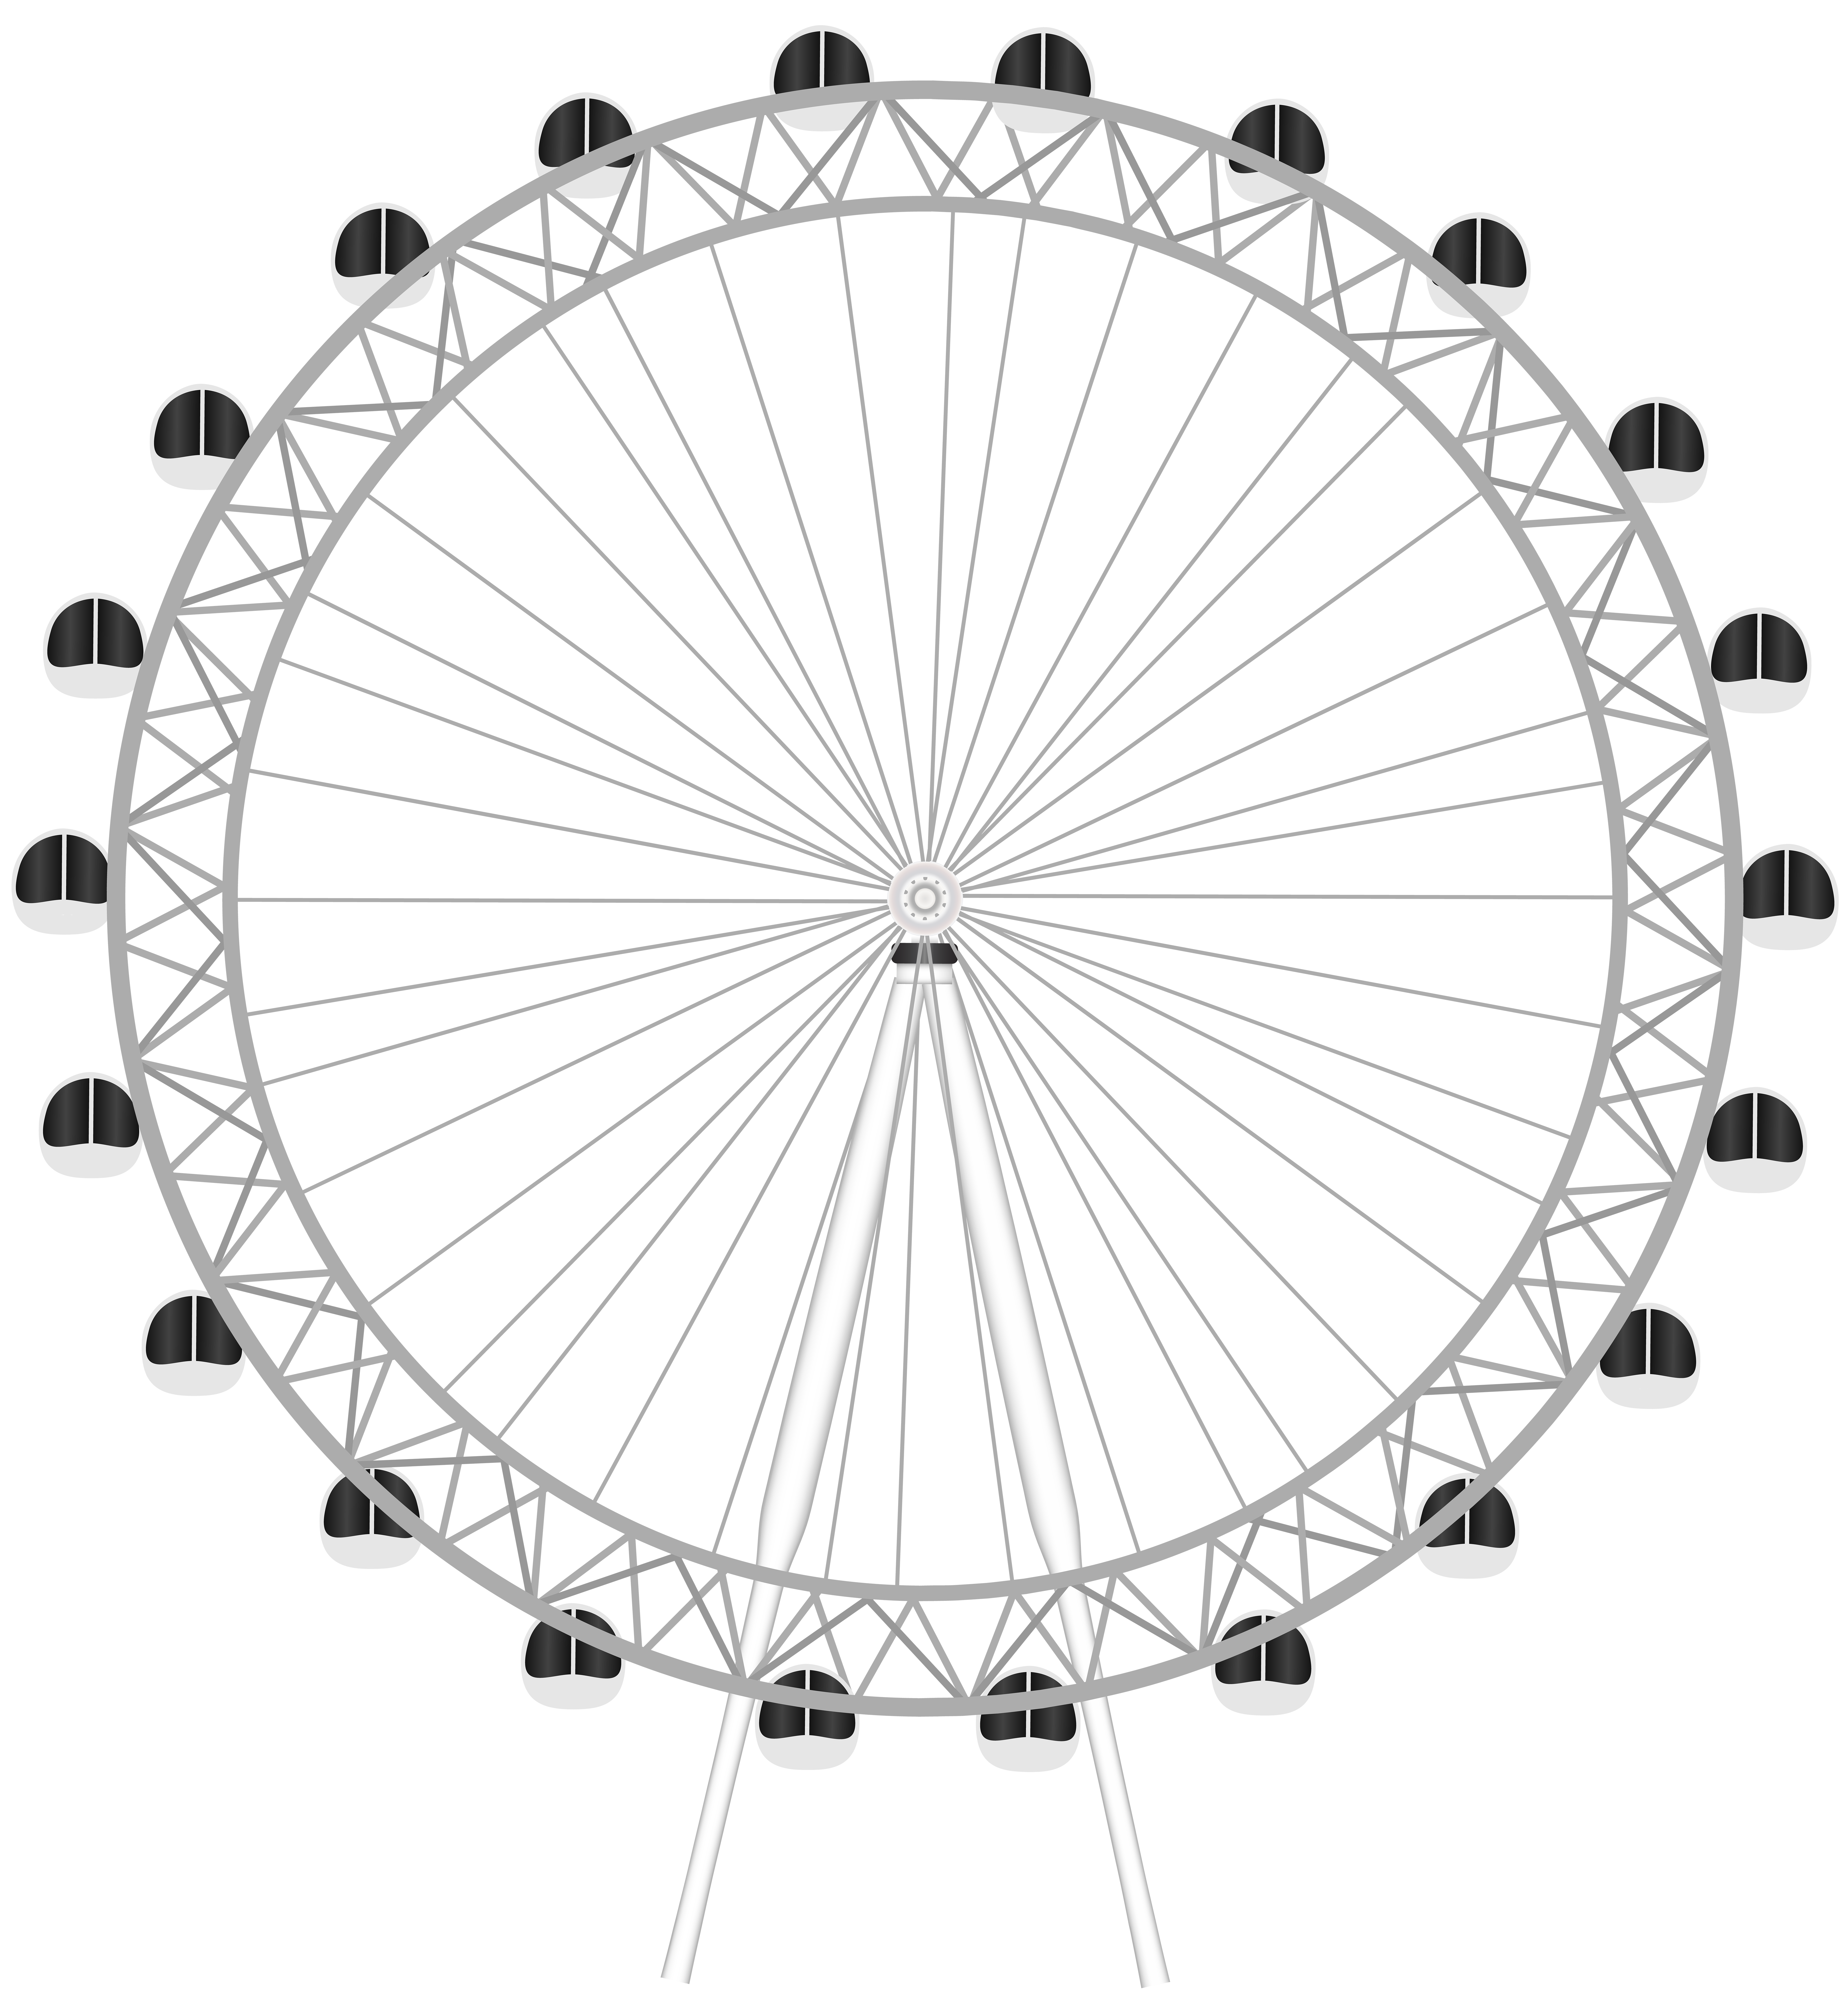 London clipart black and white. Eye png clip art